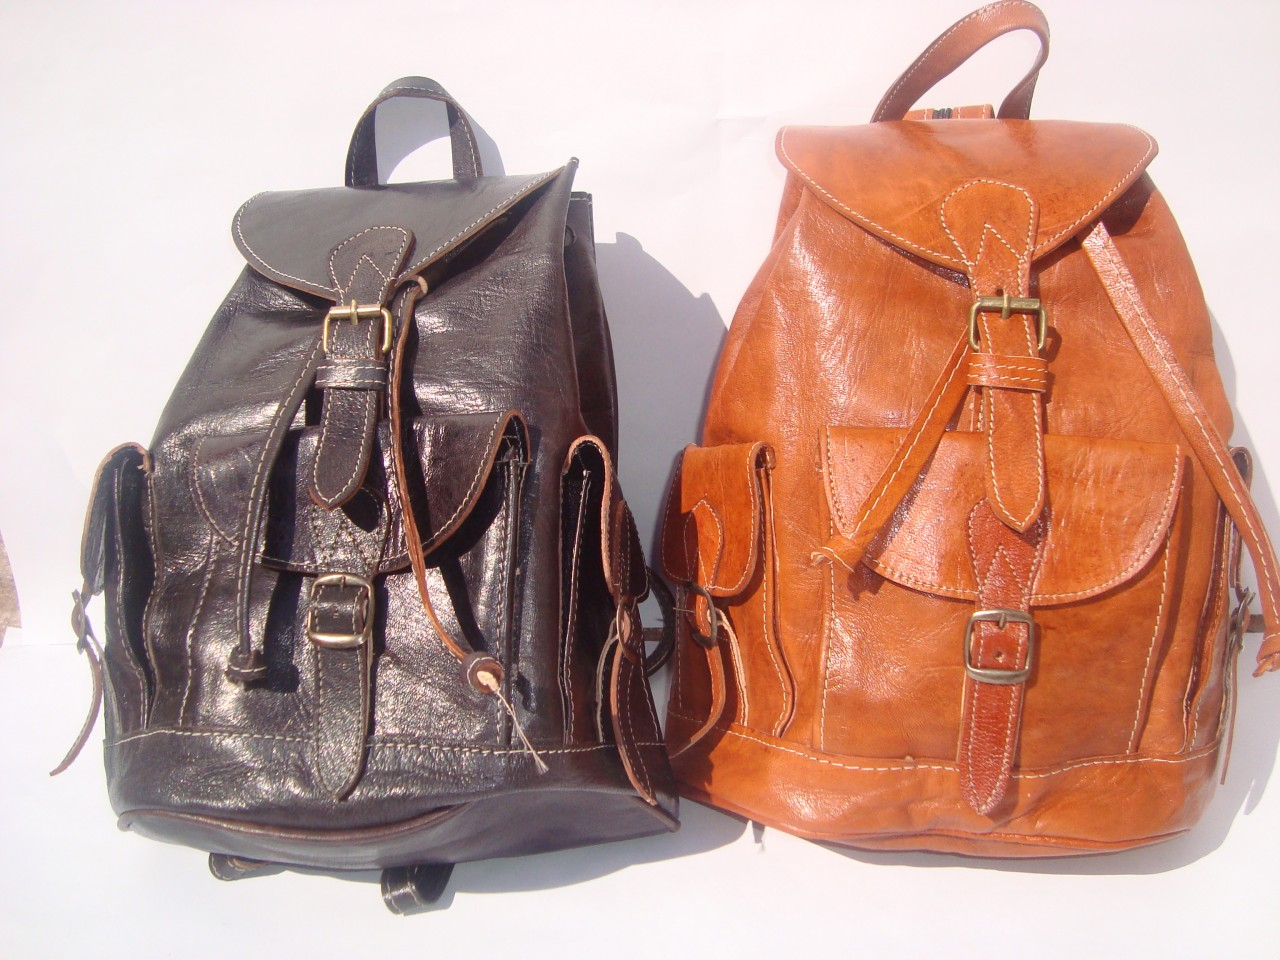 Back Purse : ... -Leather-Backpack-Rucksack-back-bag-soulder-vintage-purse-travel-bag